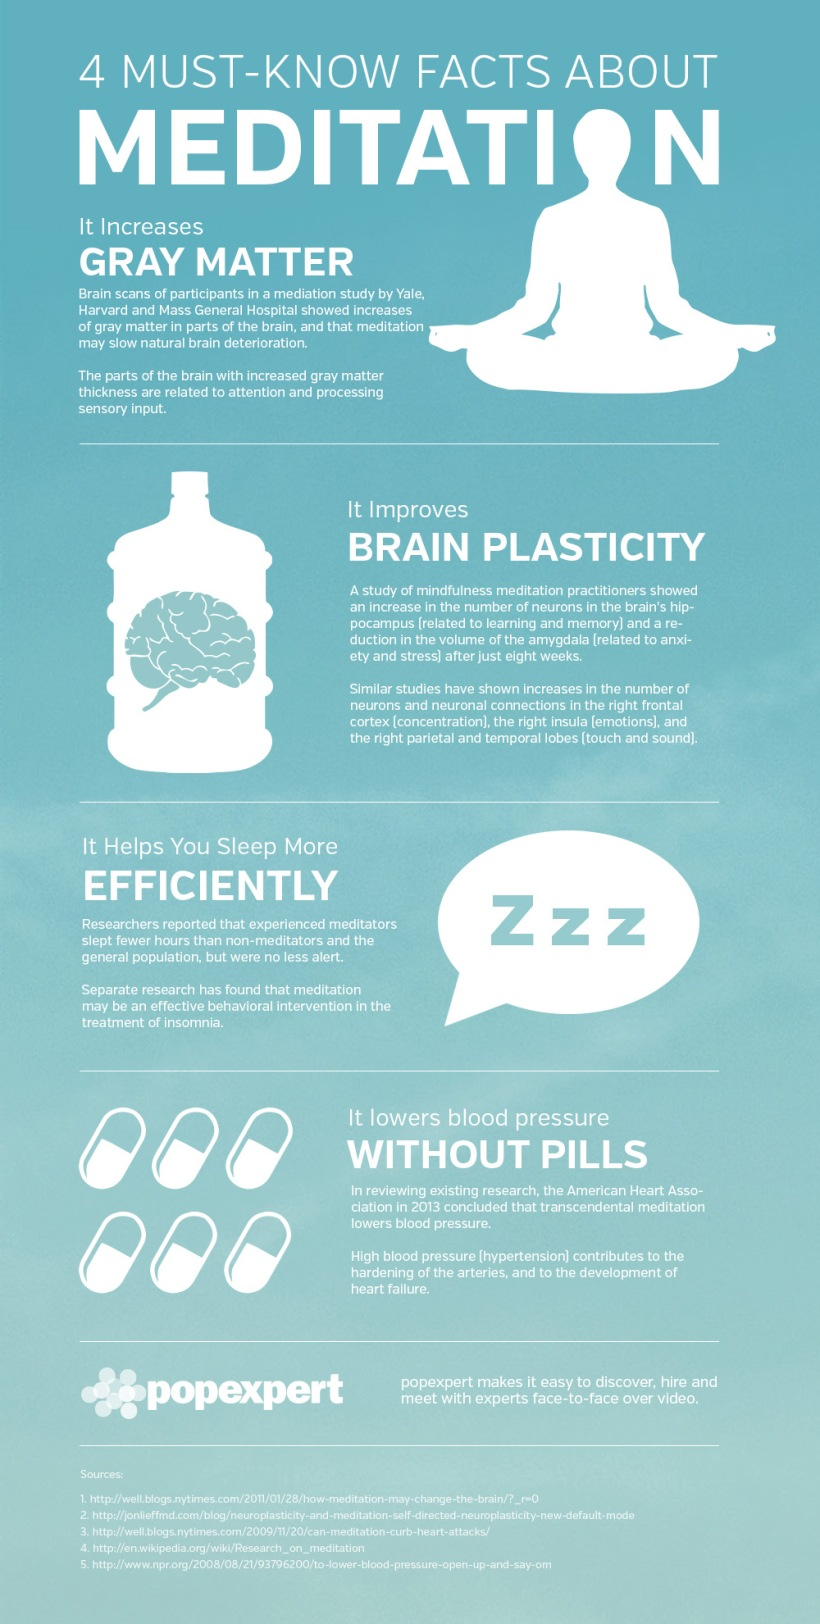 4-mustknow-facts-about-meditation_524f3d019e075